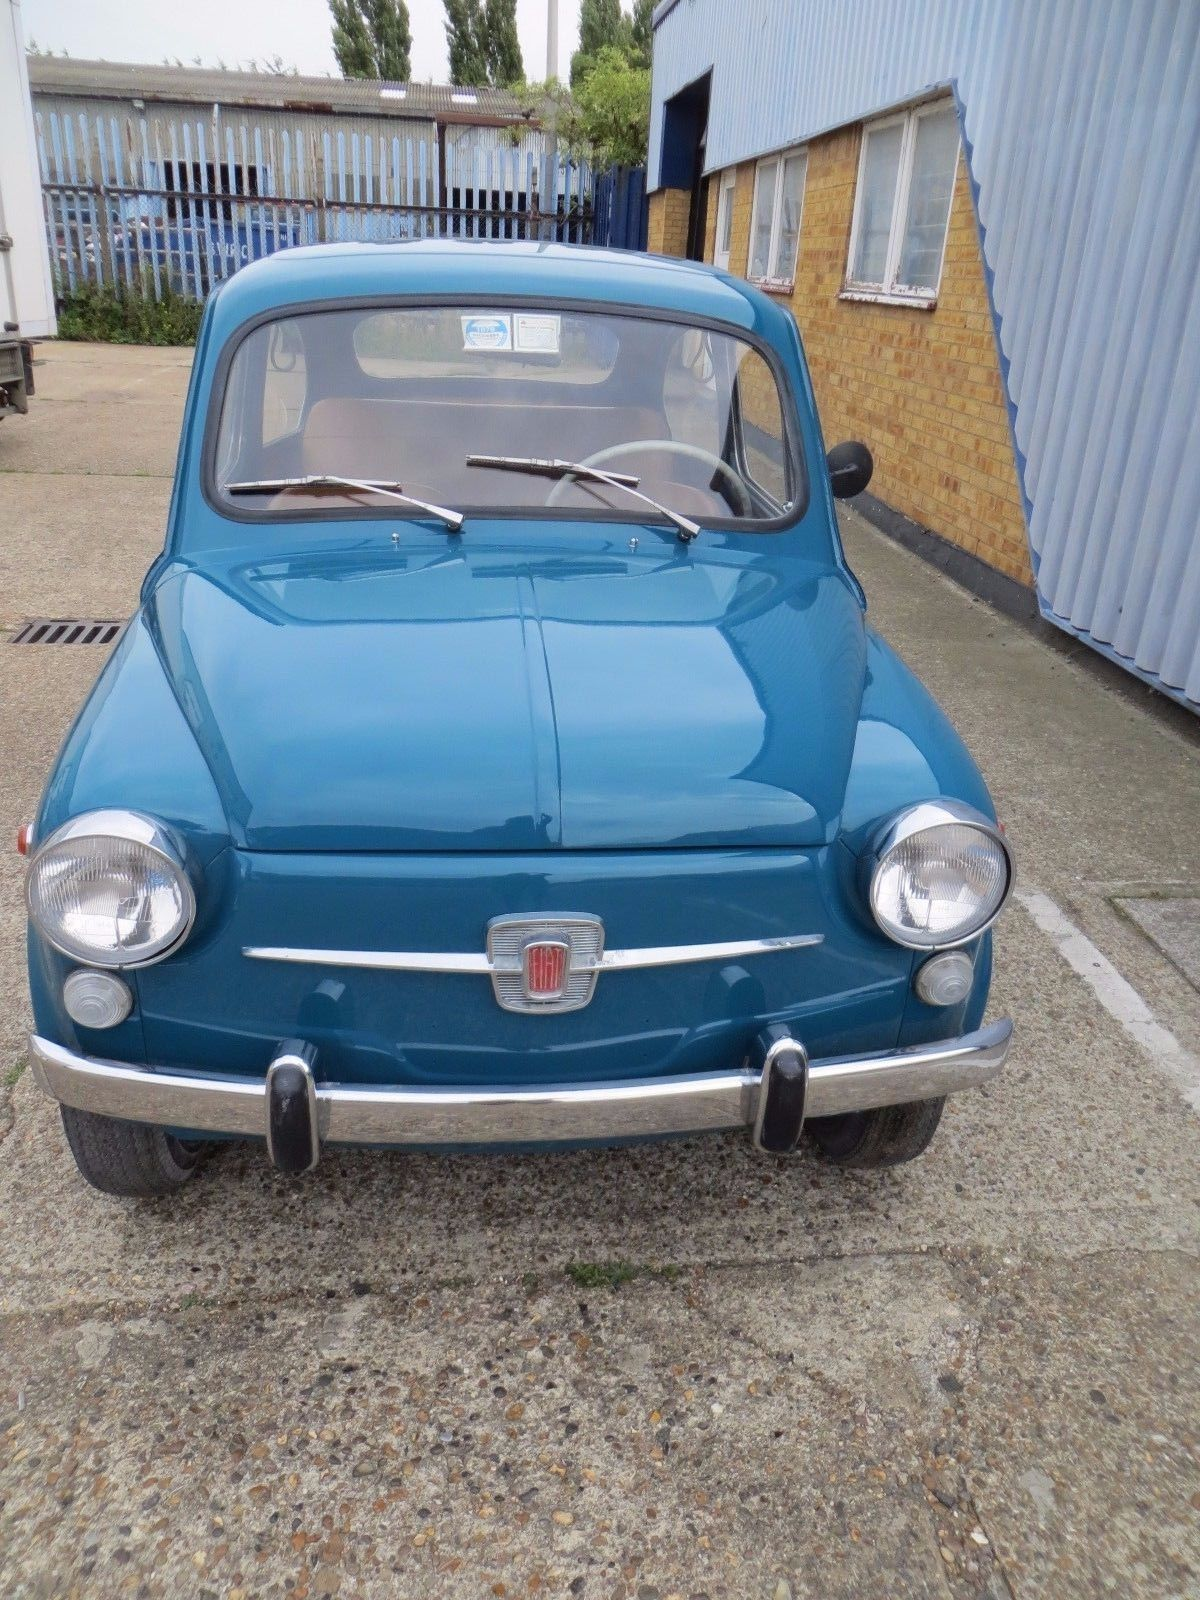 eBay: Italian 1969 Fiat 600 D Excellent Used Car Repainted With ...